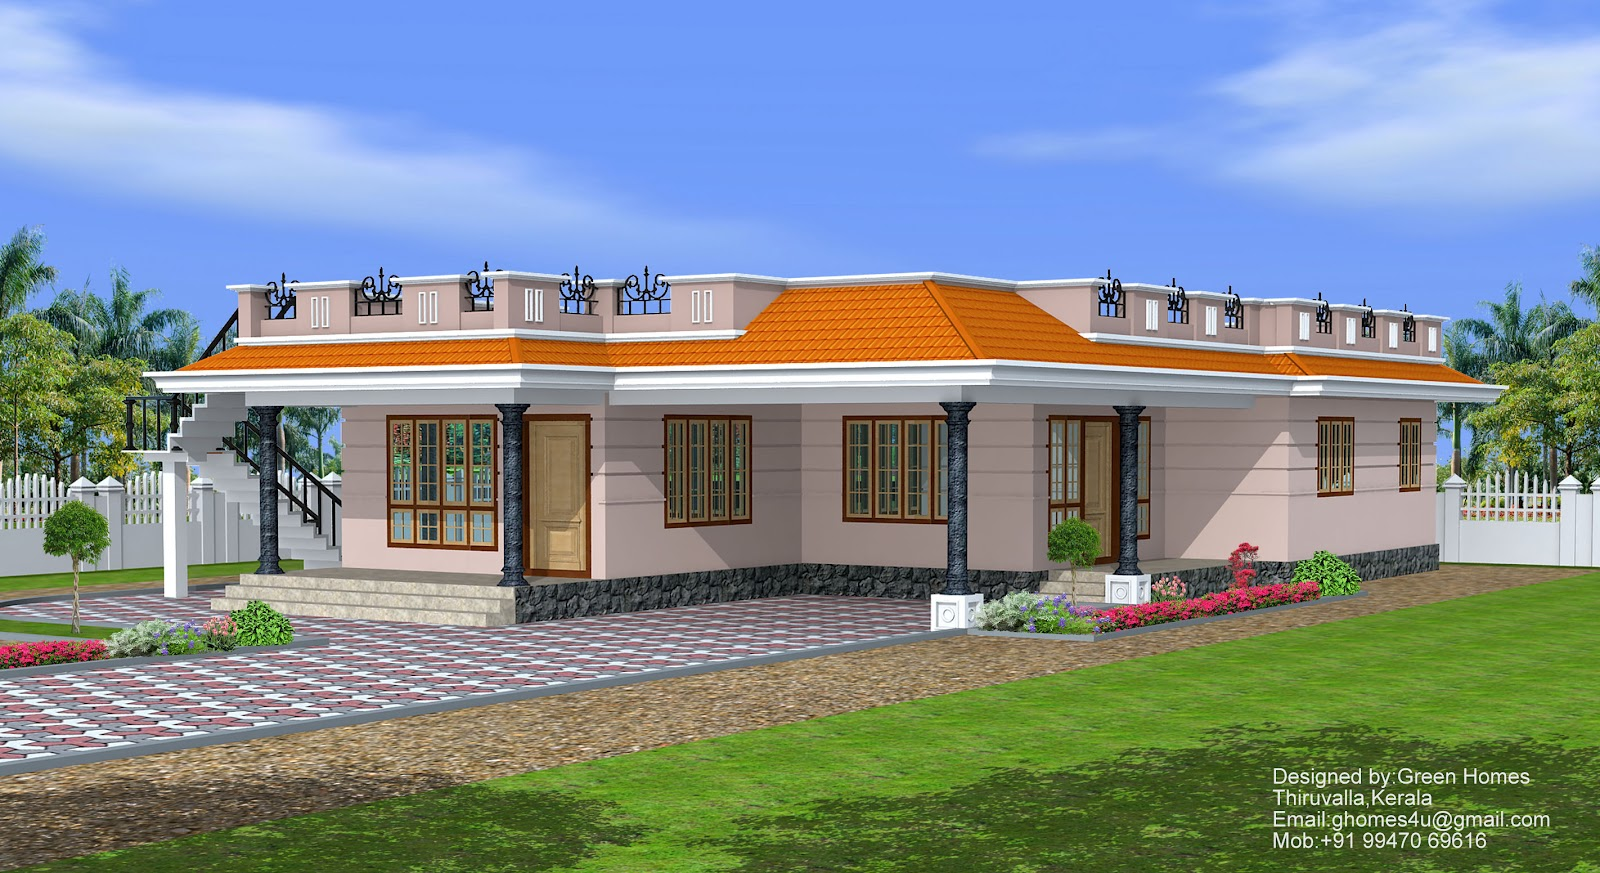 1850 Sq.feet single storey house designed by Green Homes , Thiuvalla